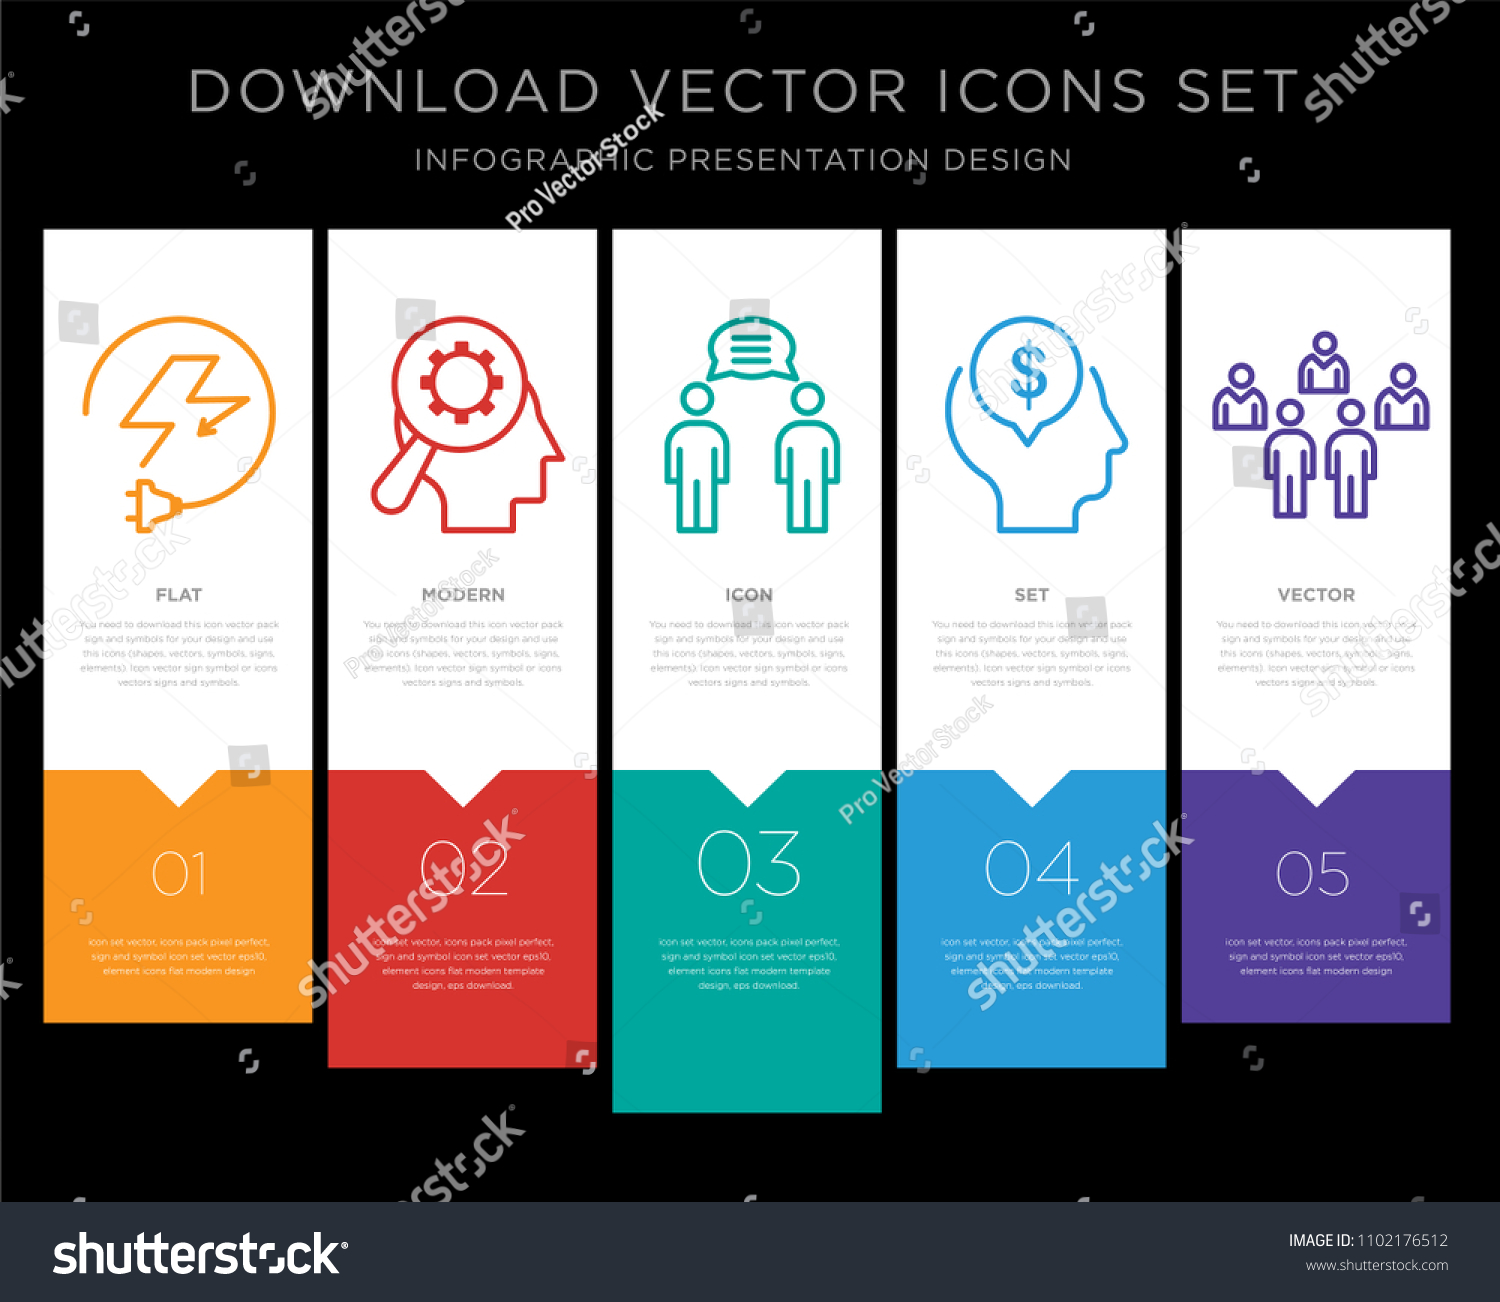 5 Vector Icons Such Electricity Cognitive Stock Vector 1102176512 ...